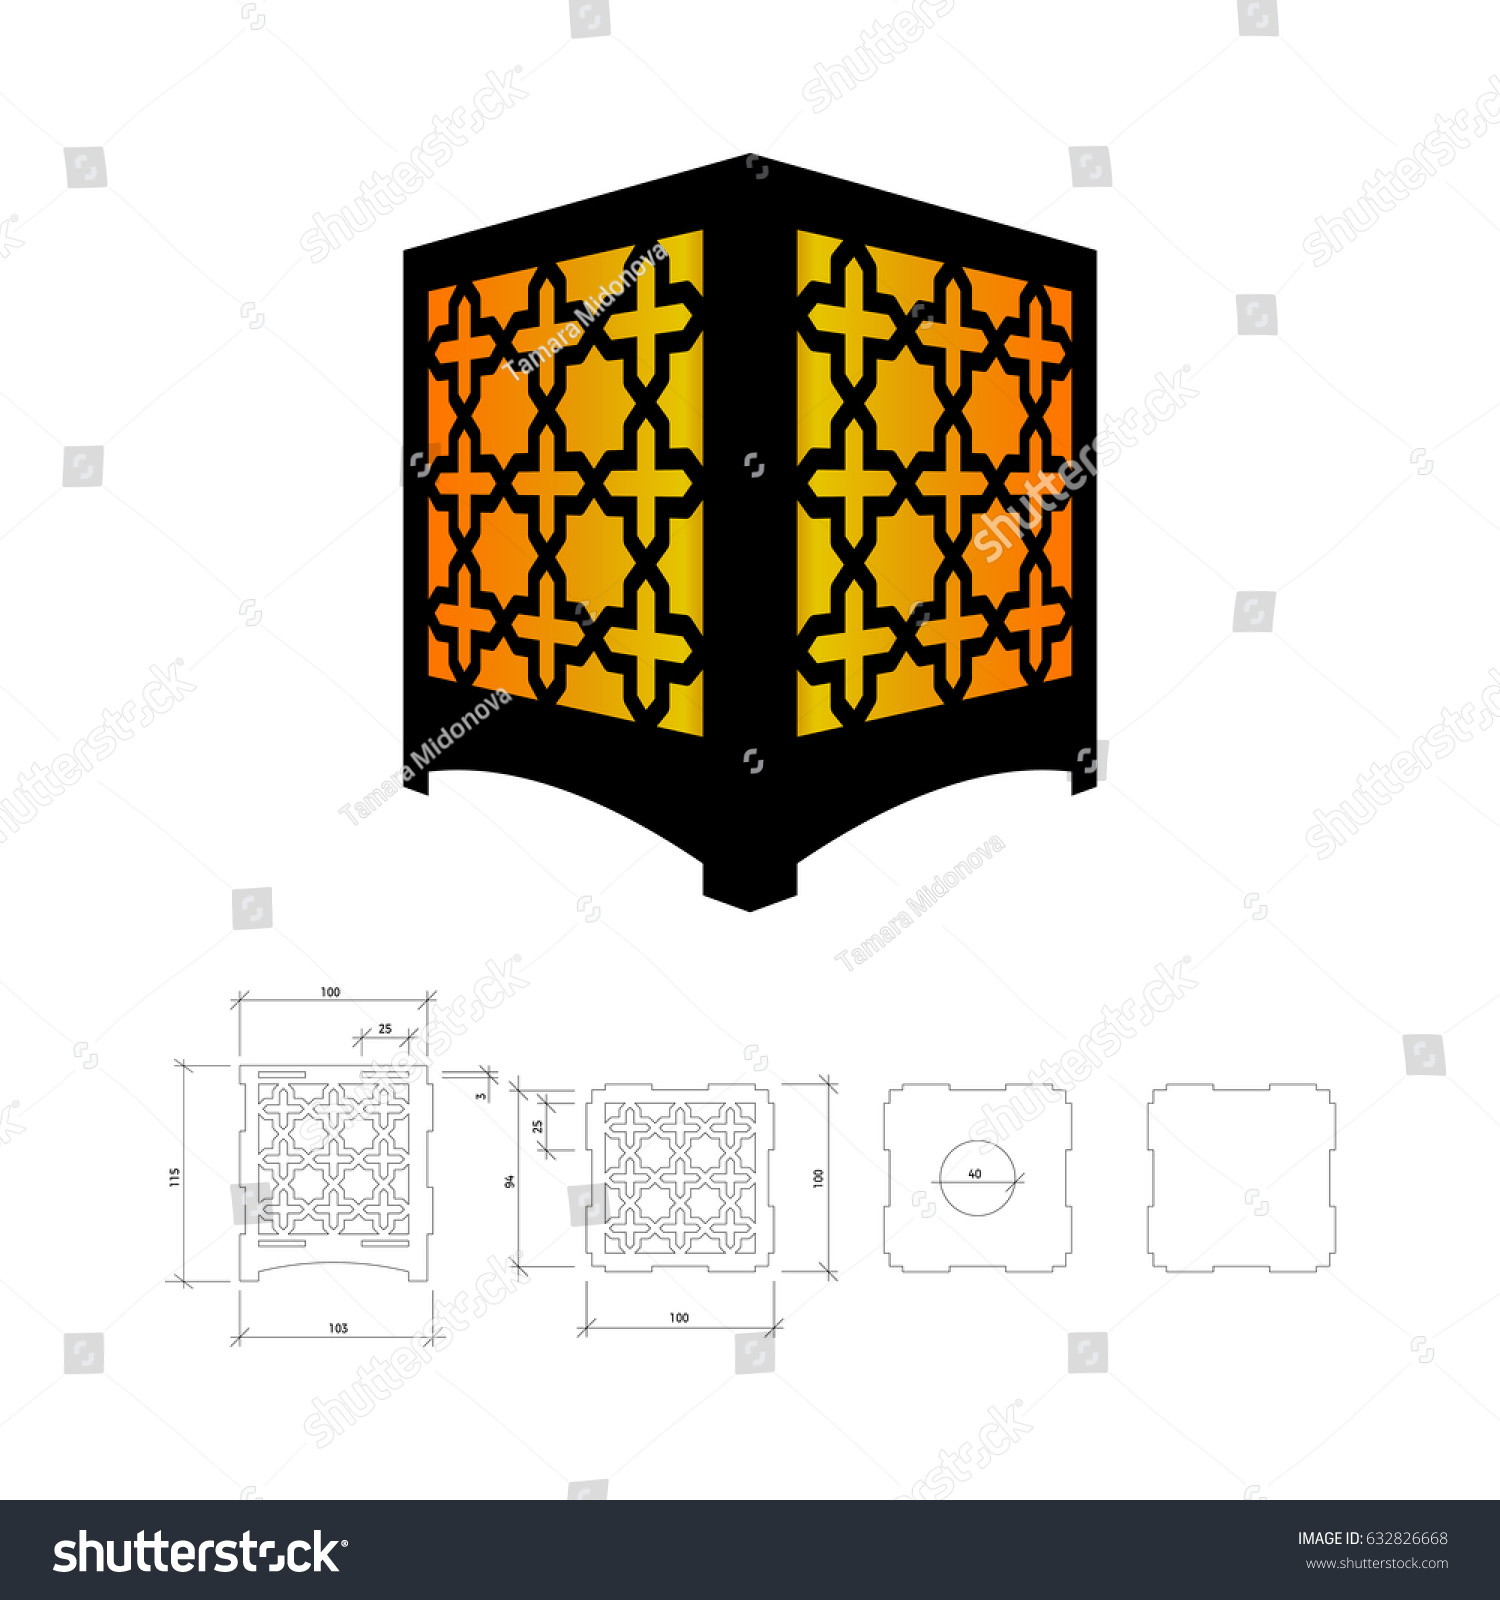 Cut out template lamp candle holder stock vector 632826668 cut out template for lamp candle holder lantern or chandelier plywood 3 mm arubaitofo Image collections